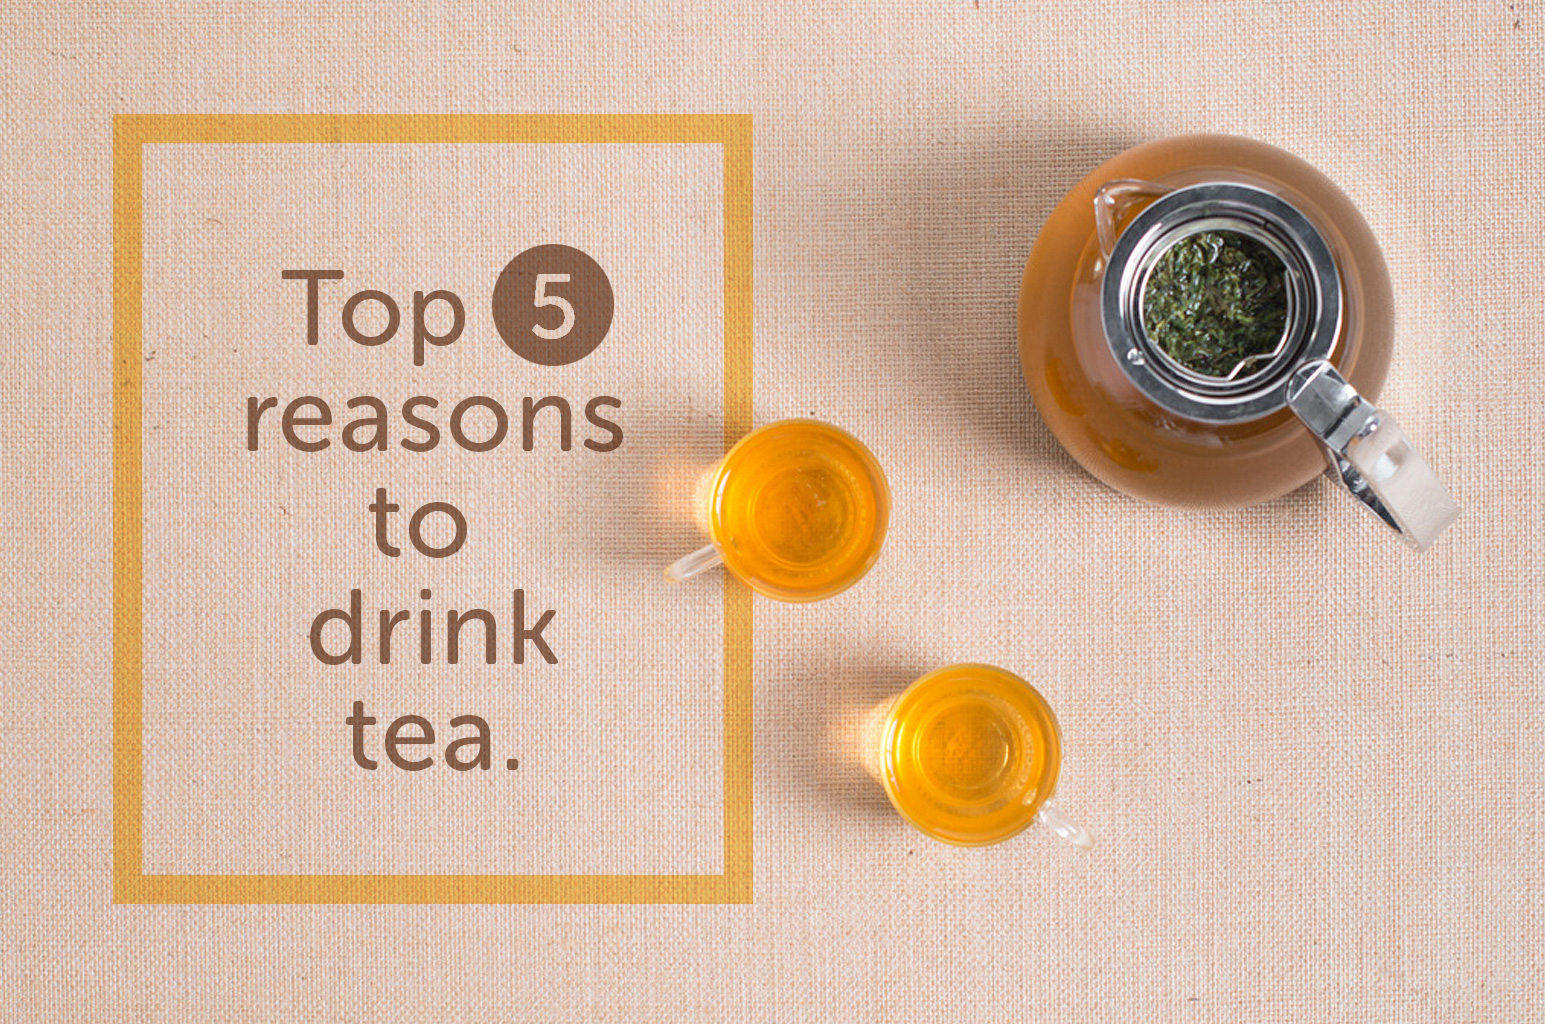 Top 5 reasons to drink tea